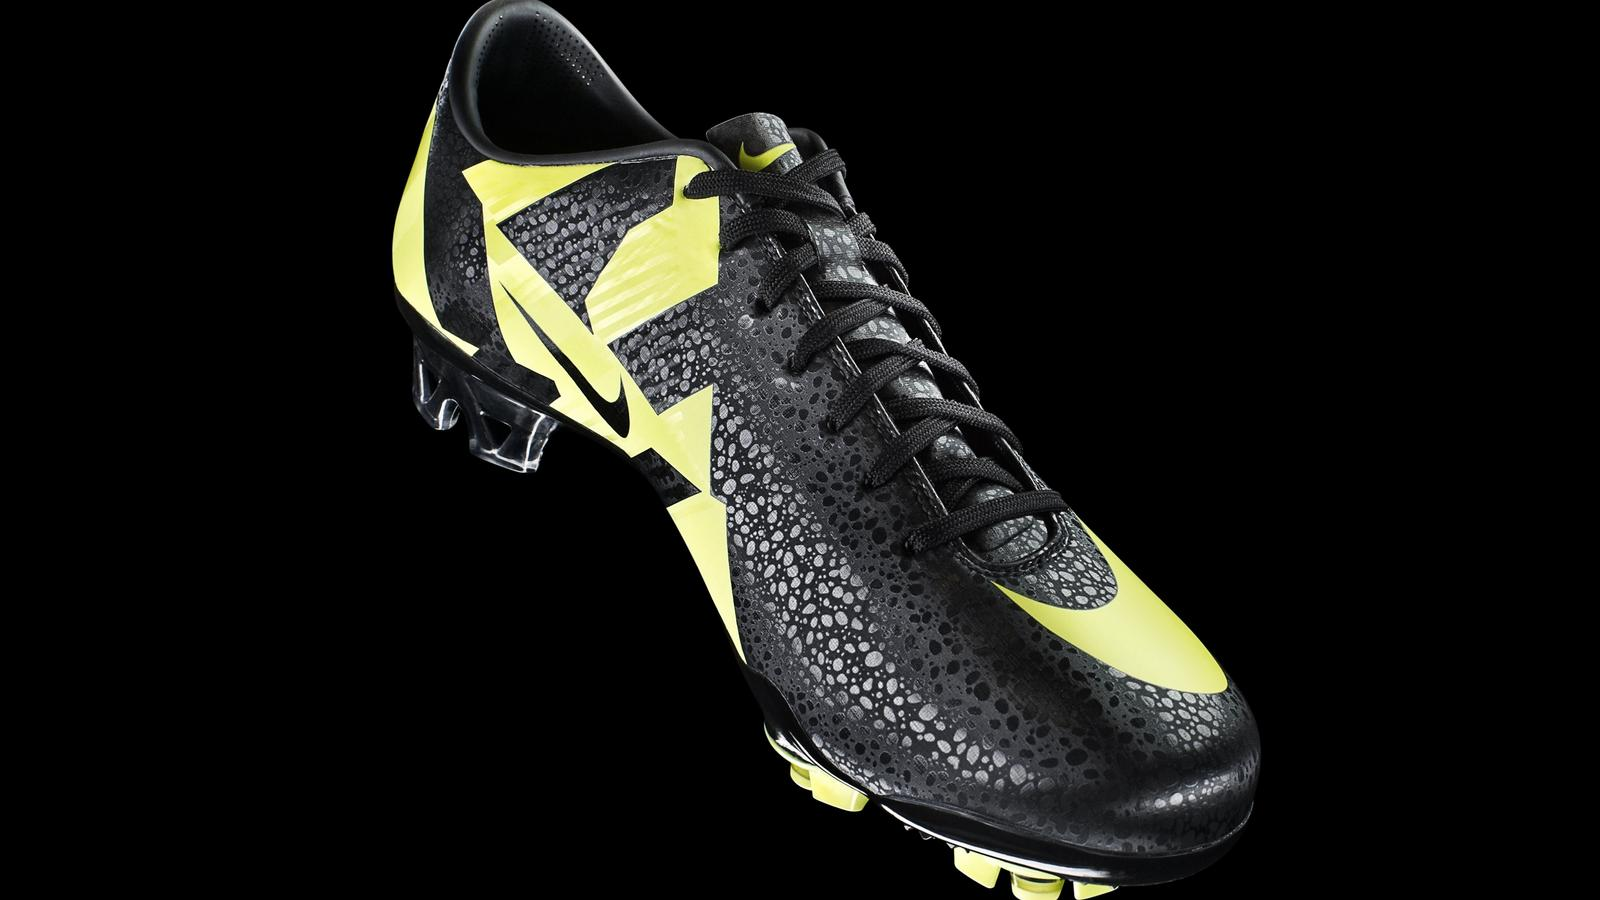 check out 7bddb 19c70 Nike Introduces the CR Mercurial Vapor SuperFly III - Nike News